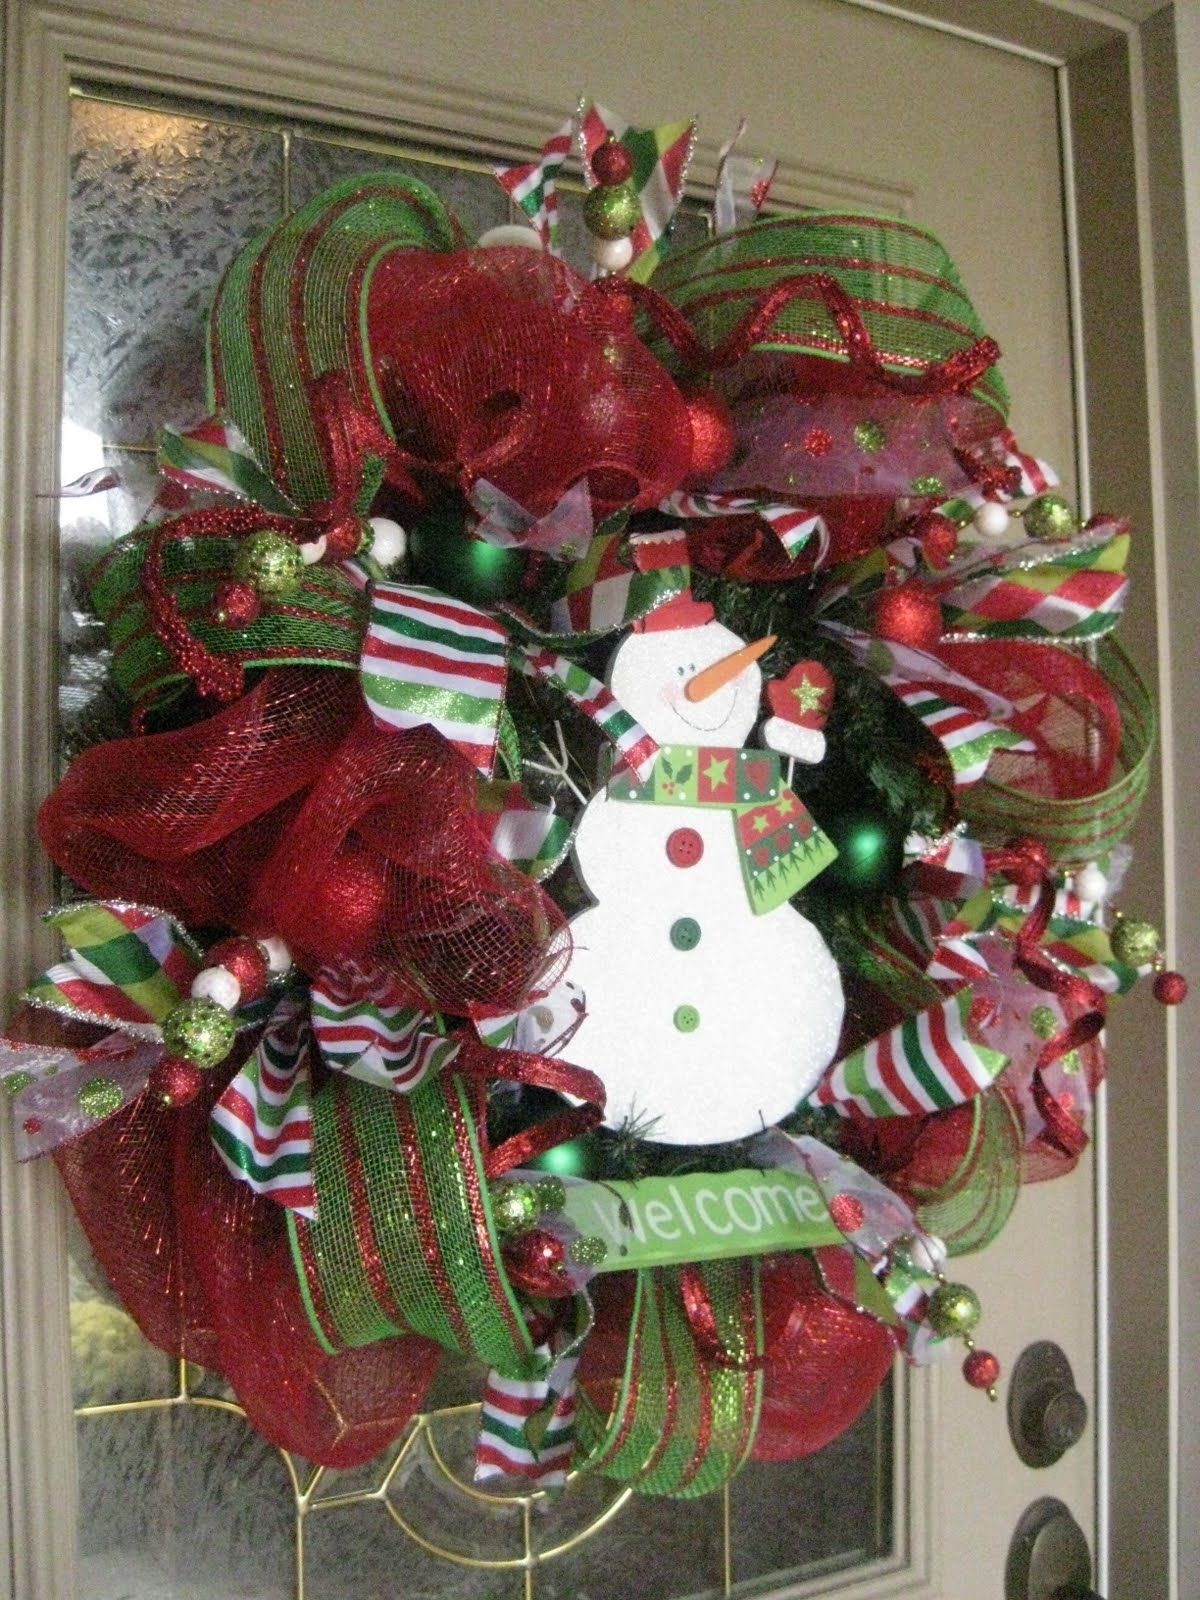 How to decorate a christmas tree with mesh netting - Christmas Decor